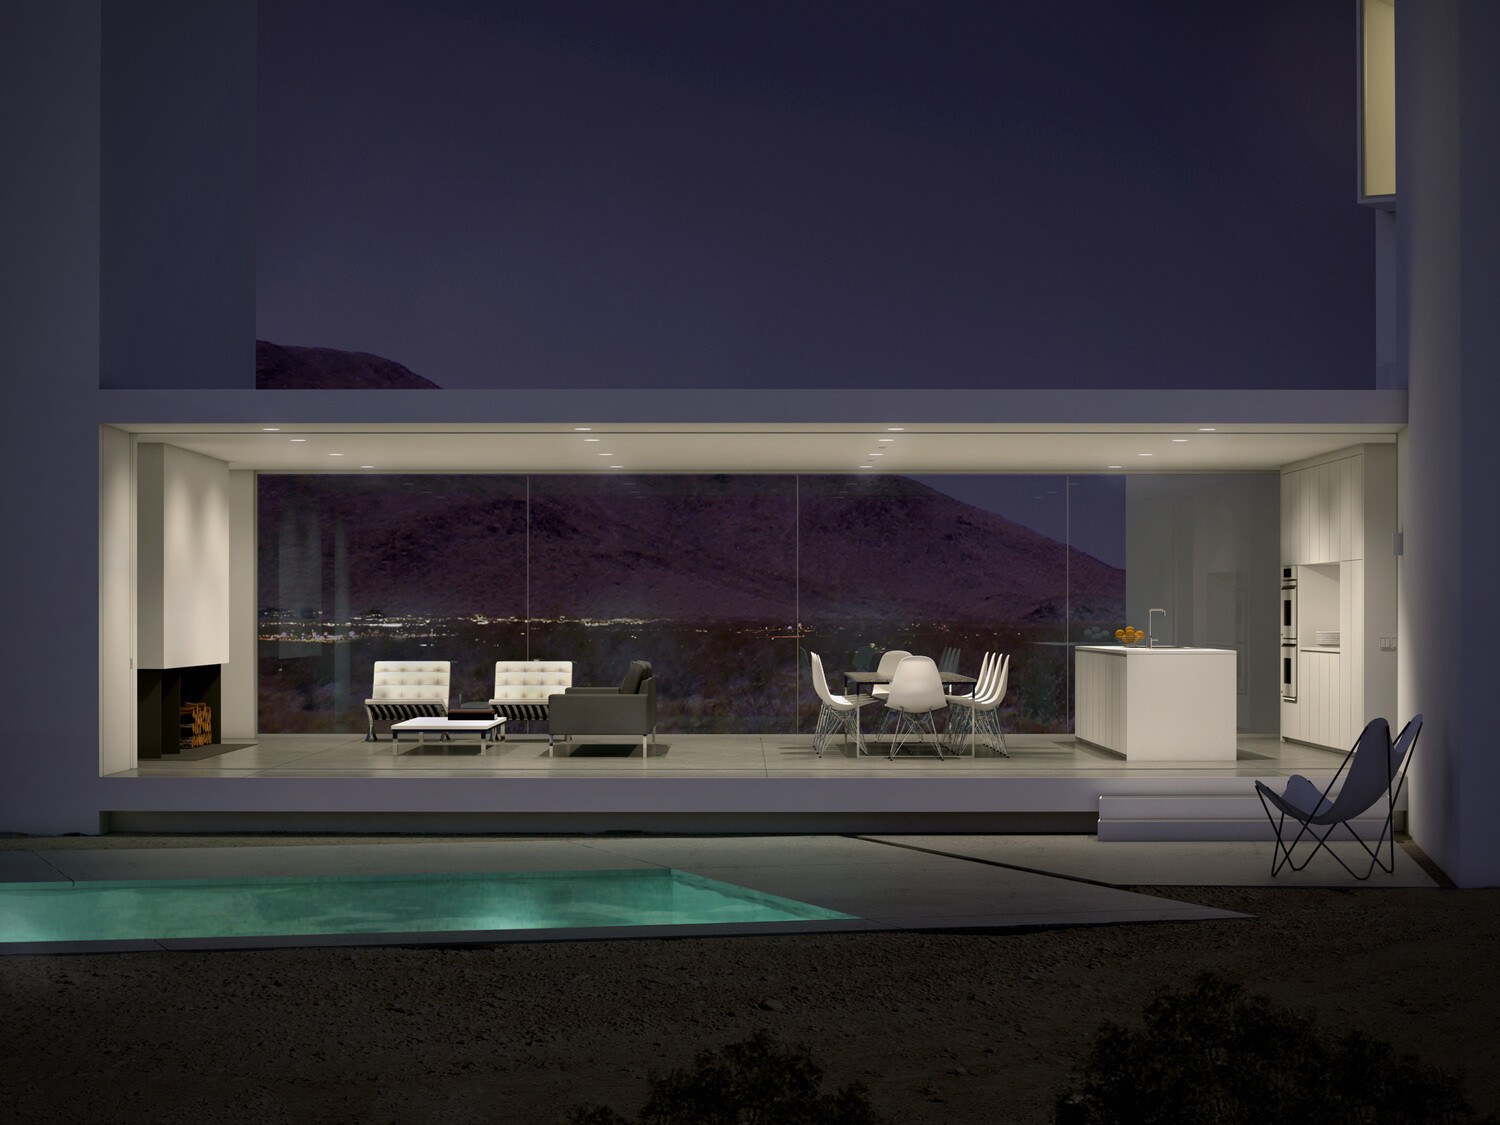 Contemporary Architecture and a Night in the Desert: Four Eyes House